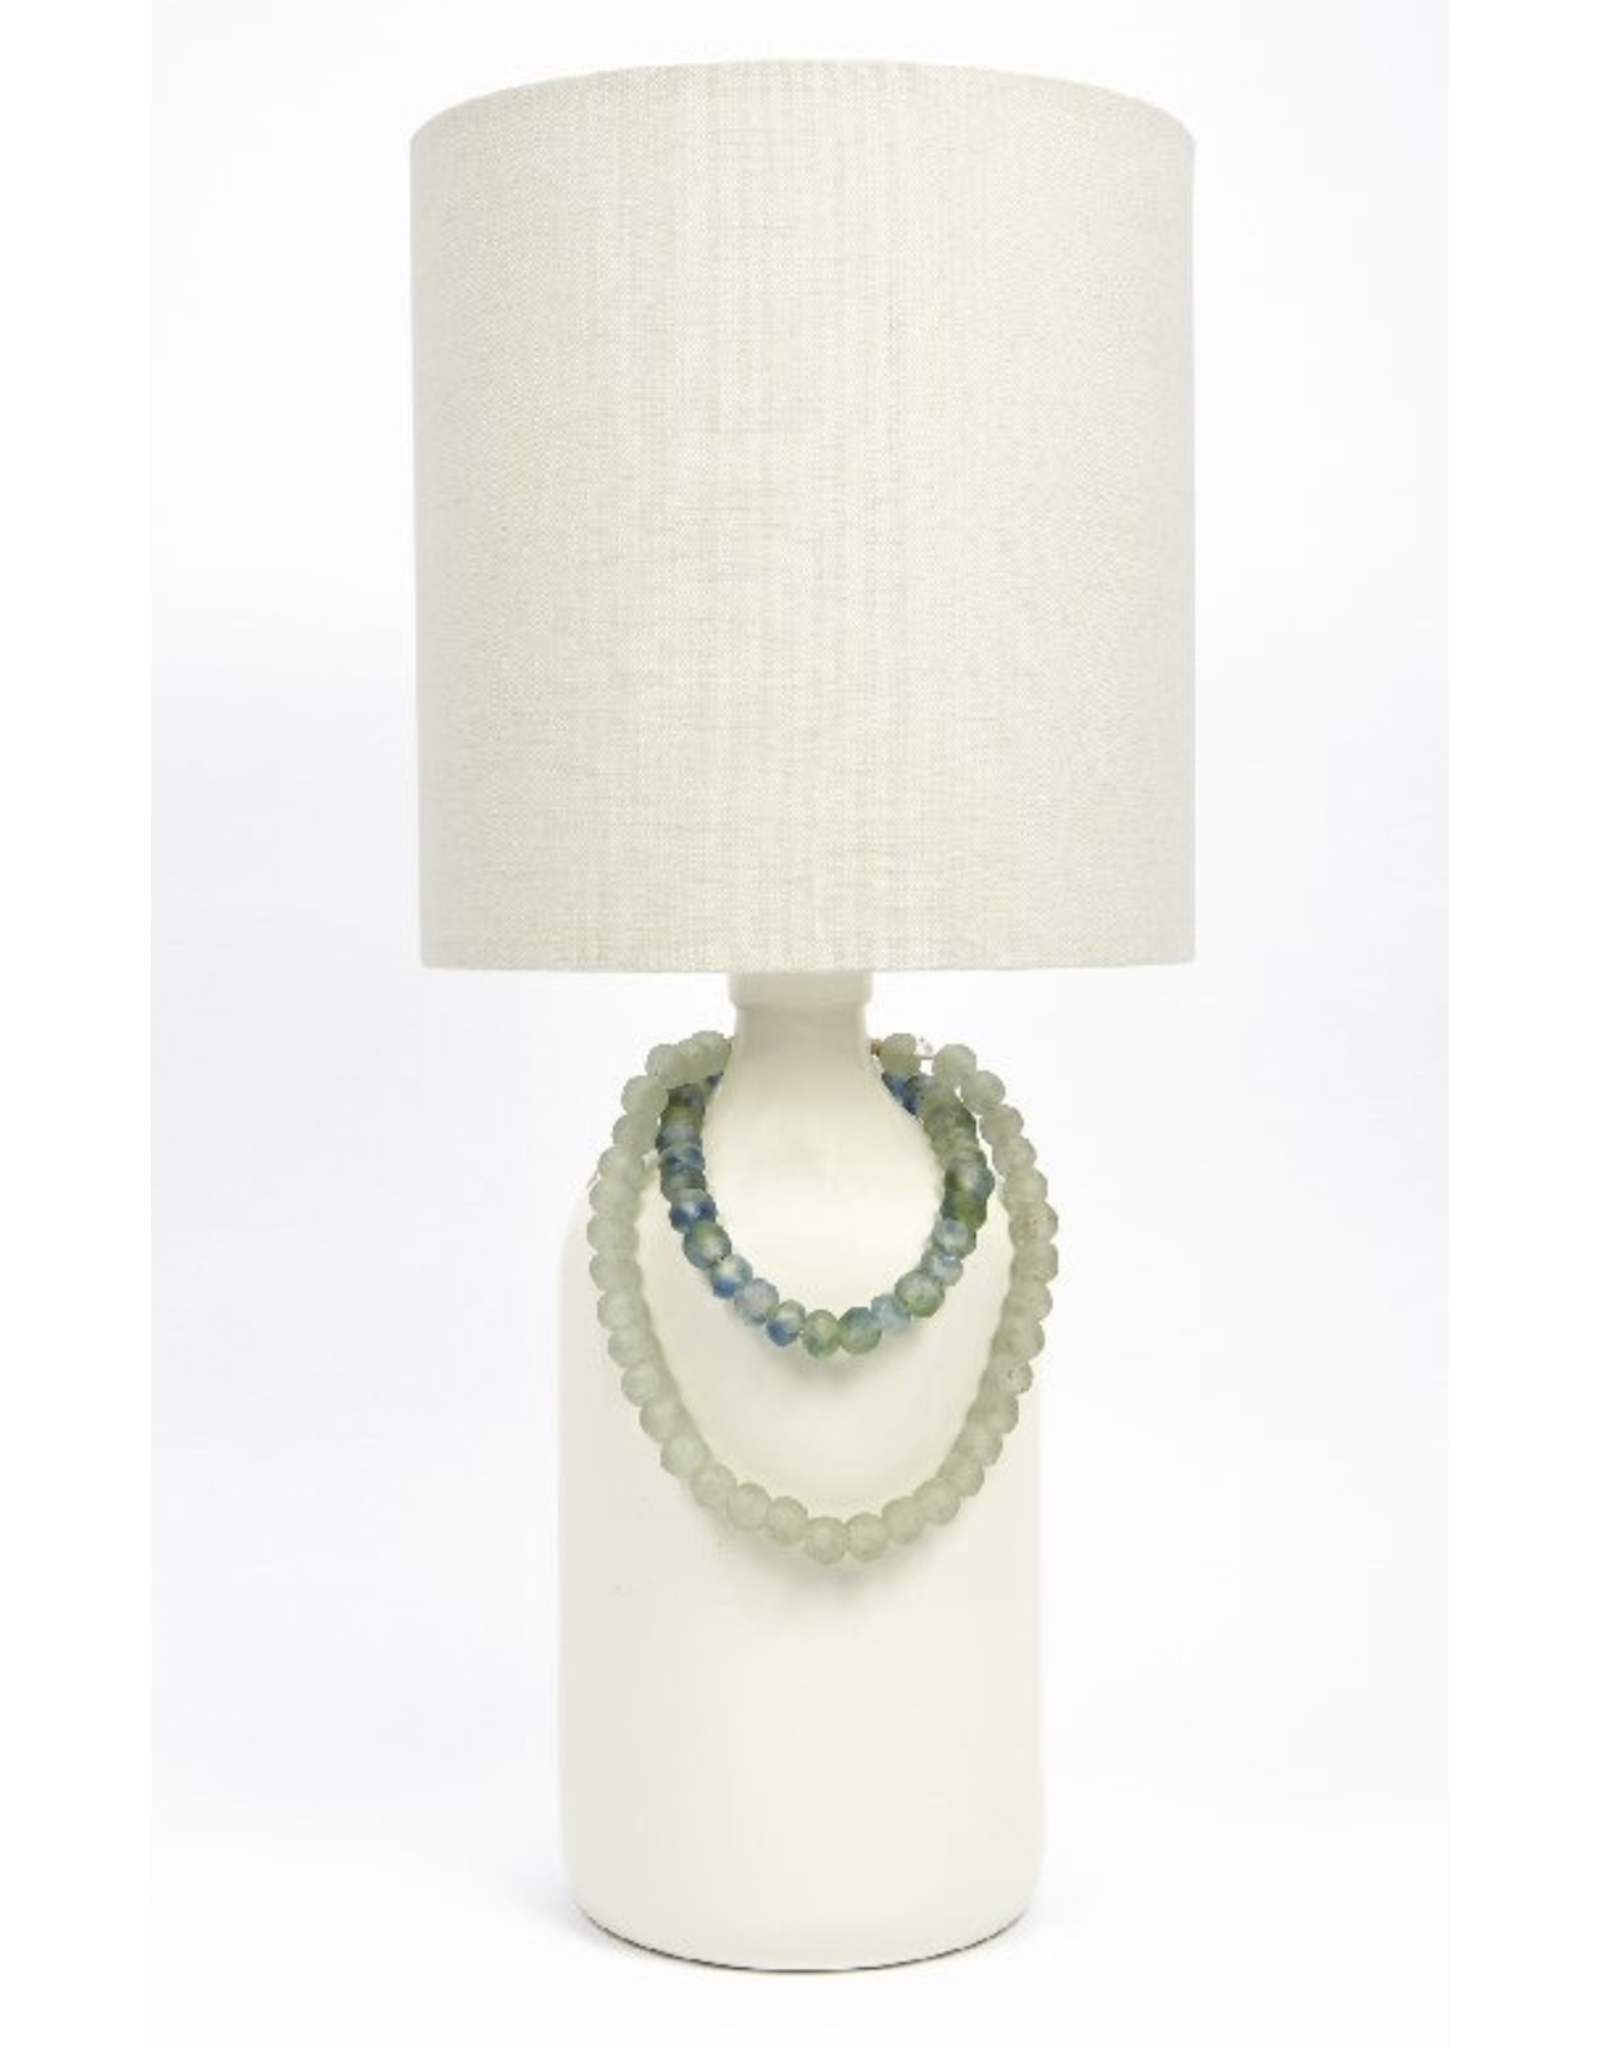 White Lamp with Blue Beads